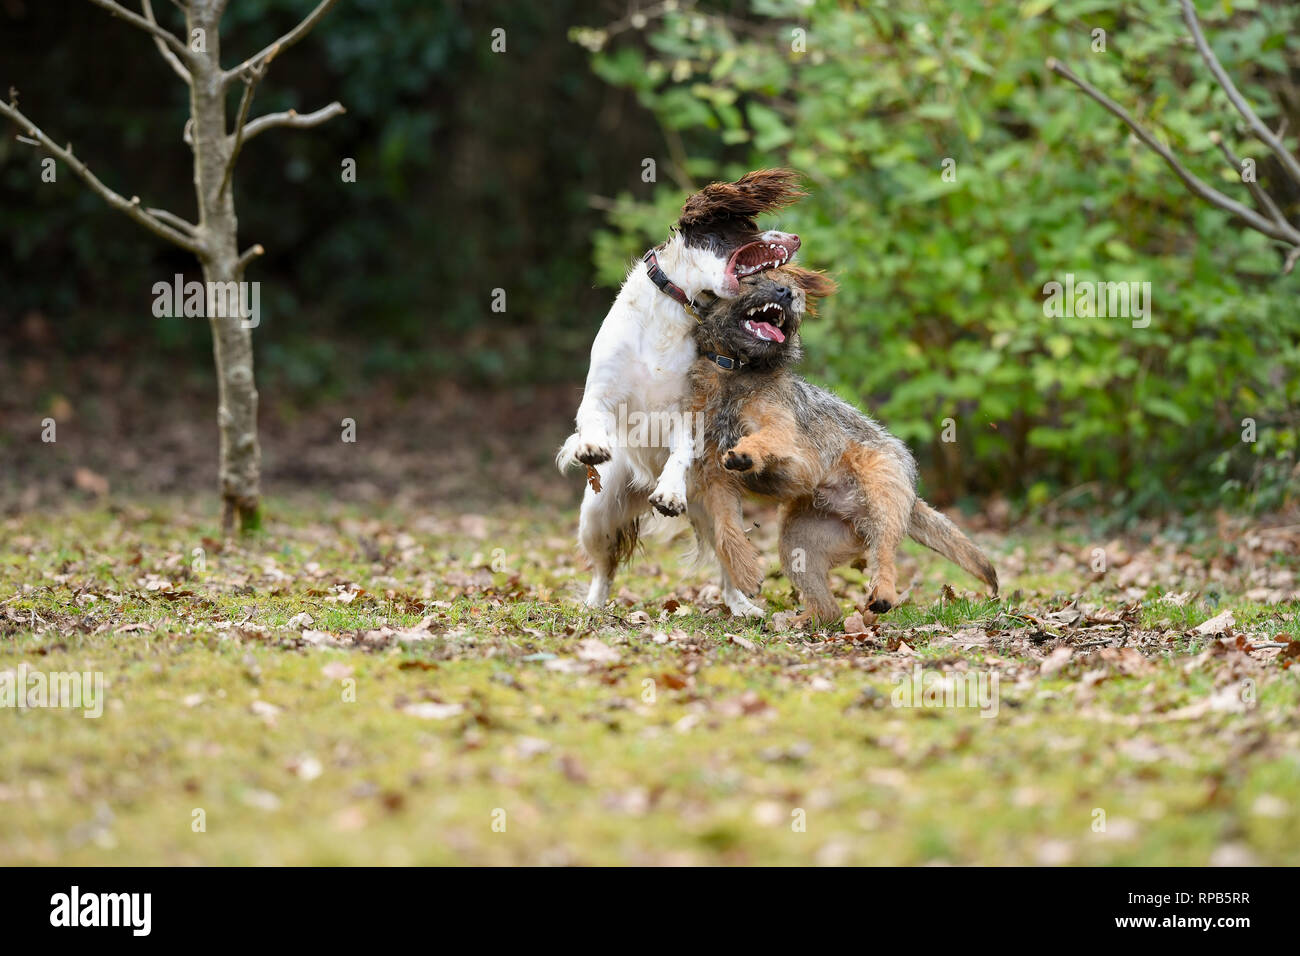 Two young ( 1 Year) English Springer Spaniel and Terrier dogs play fighting showing teeth and aggression but in a non harmful way. Stock Photo